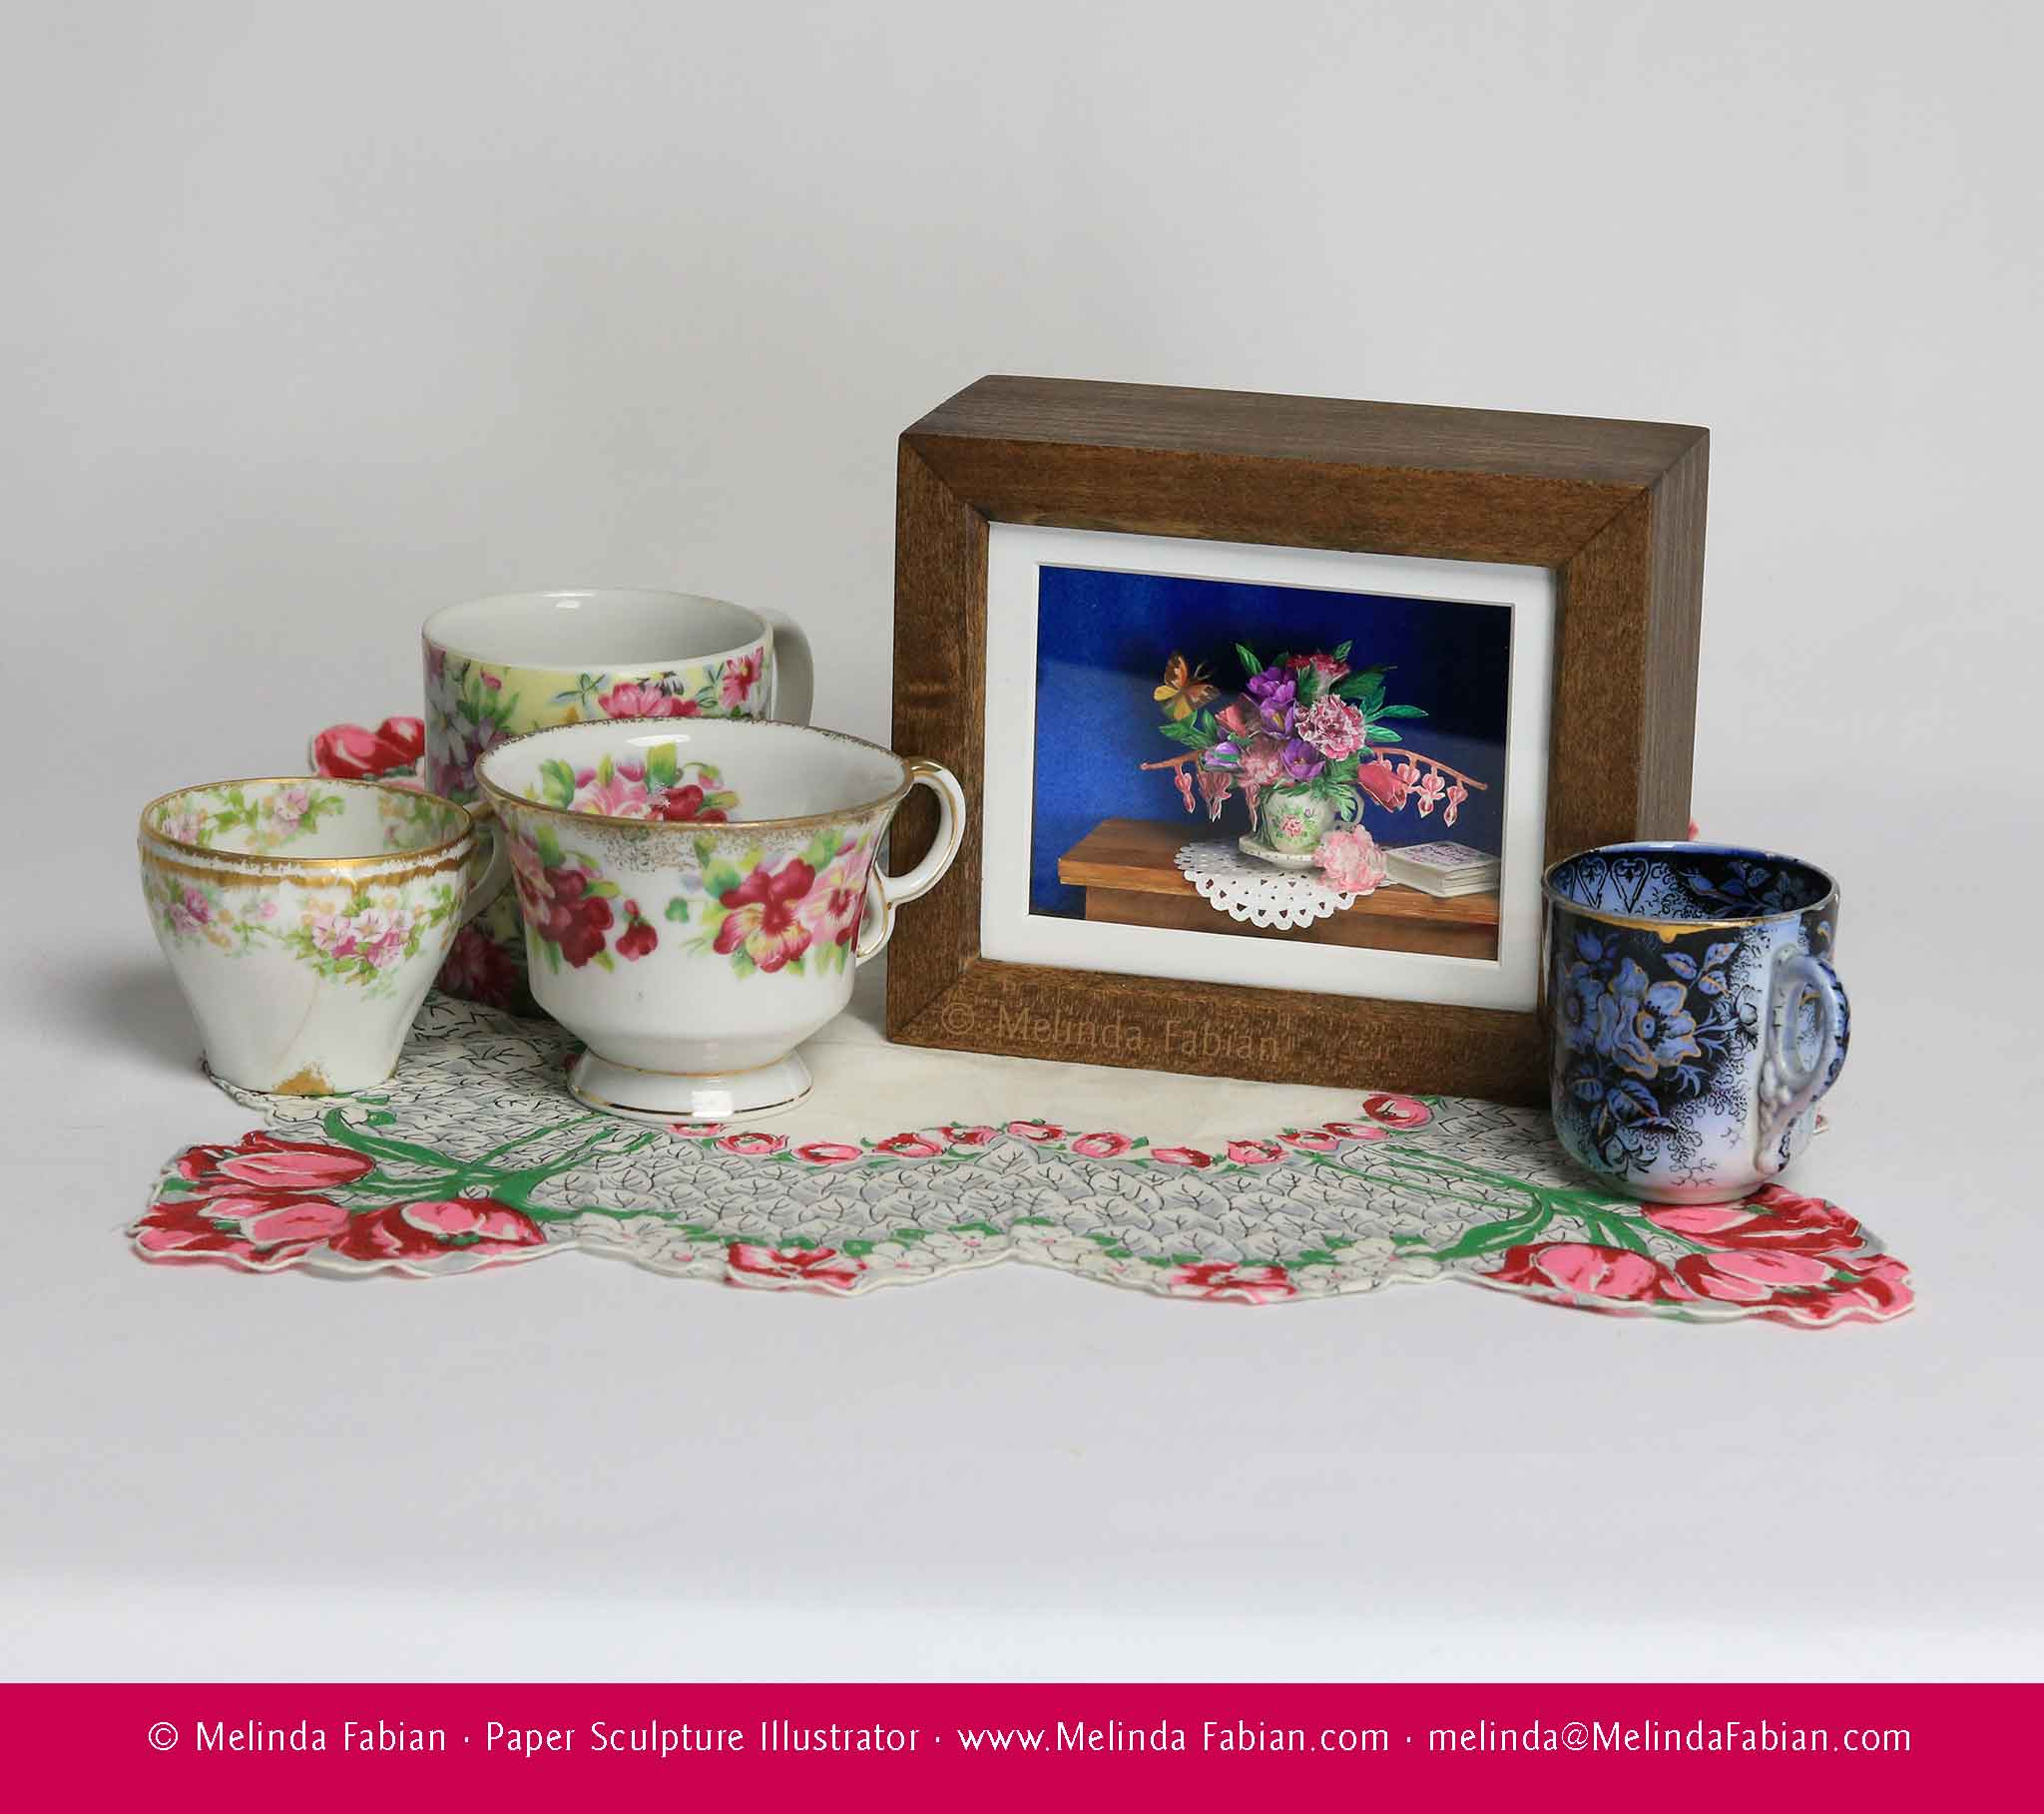 'Teacup in Spring' and Teacups